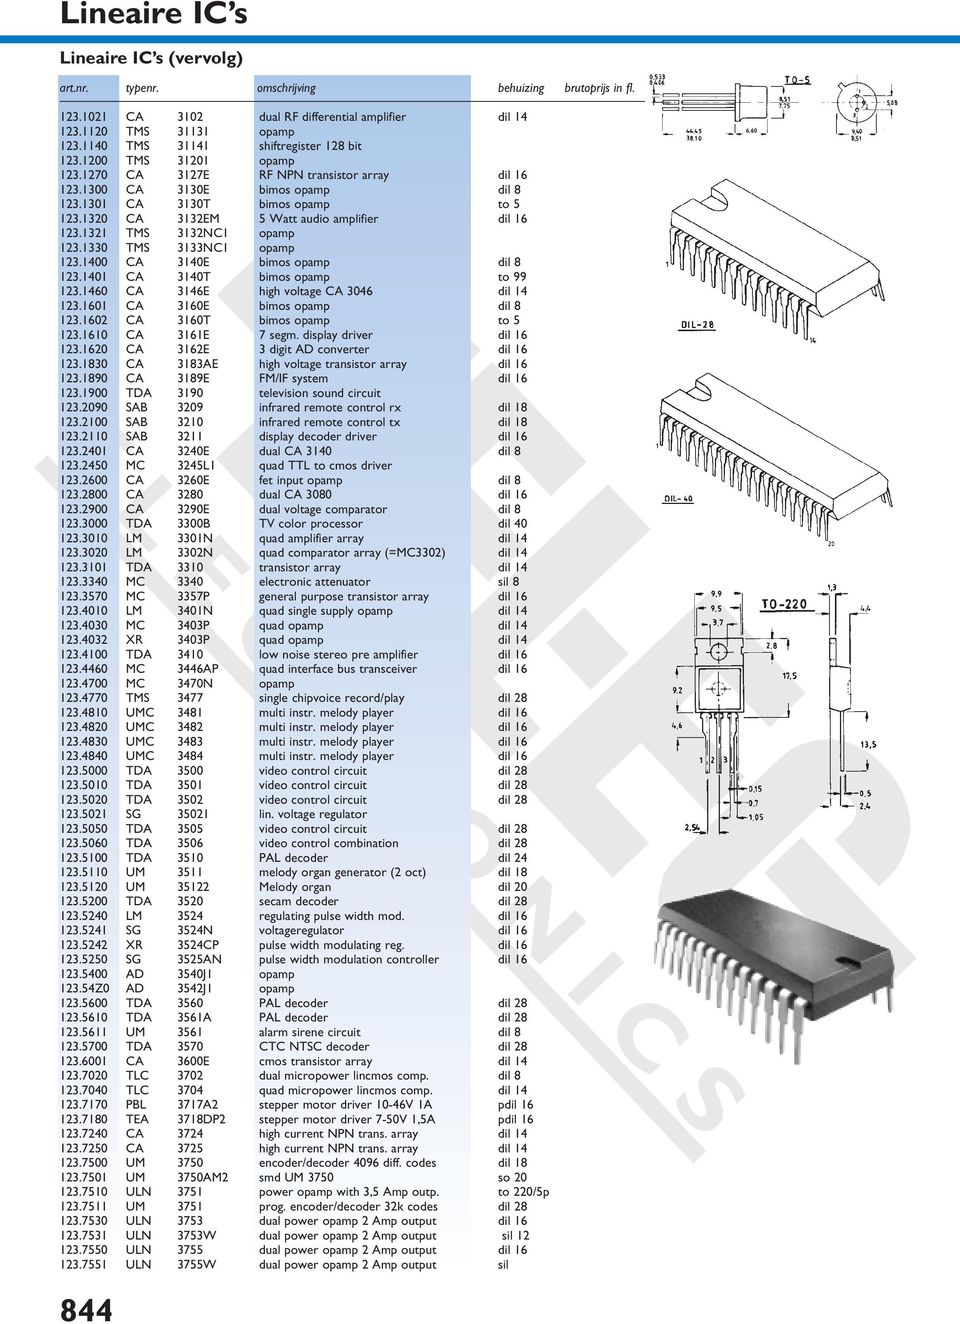 Electronics Lineaire Ic S Pdf Rs Flip Flop Using Op Amp 1400 Ca 3140e Bimos Opamp Dil 8 1231401 3140t To 99 1231460